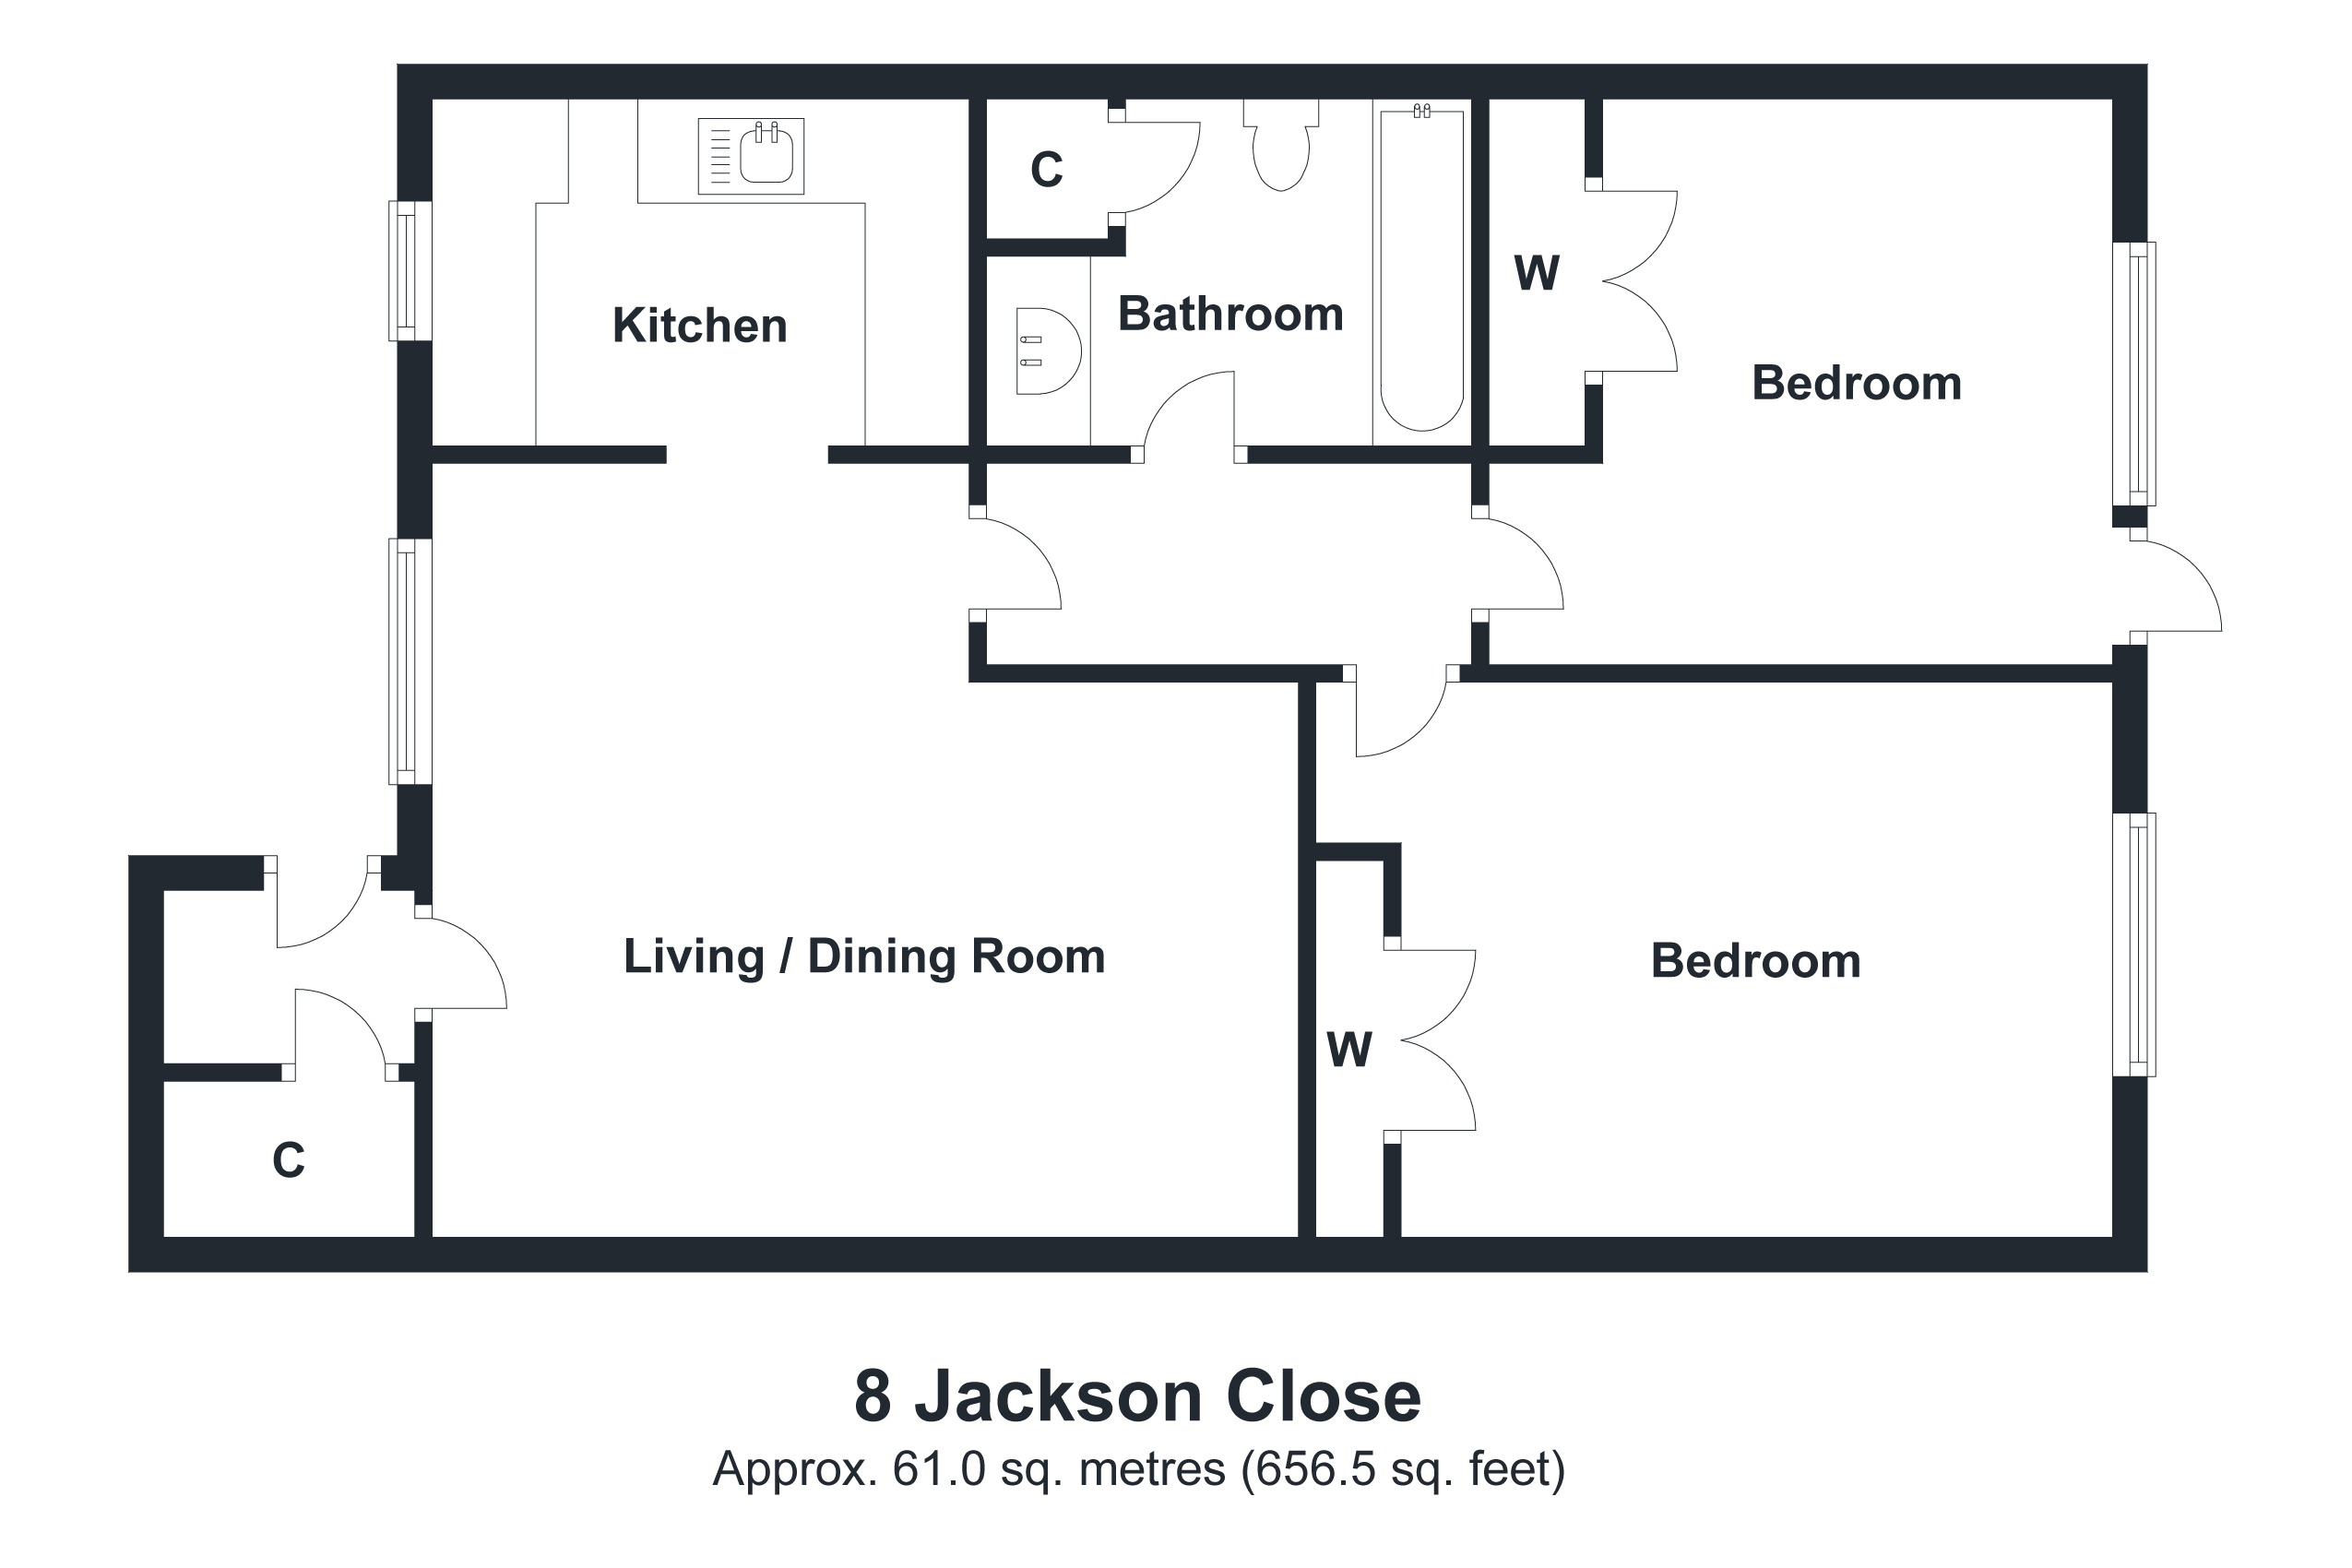 8 Jackson Close Floorplan